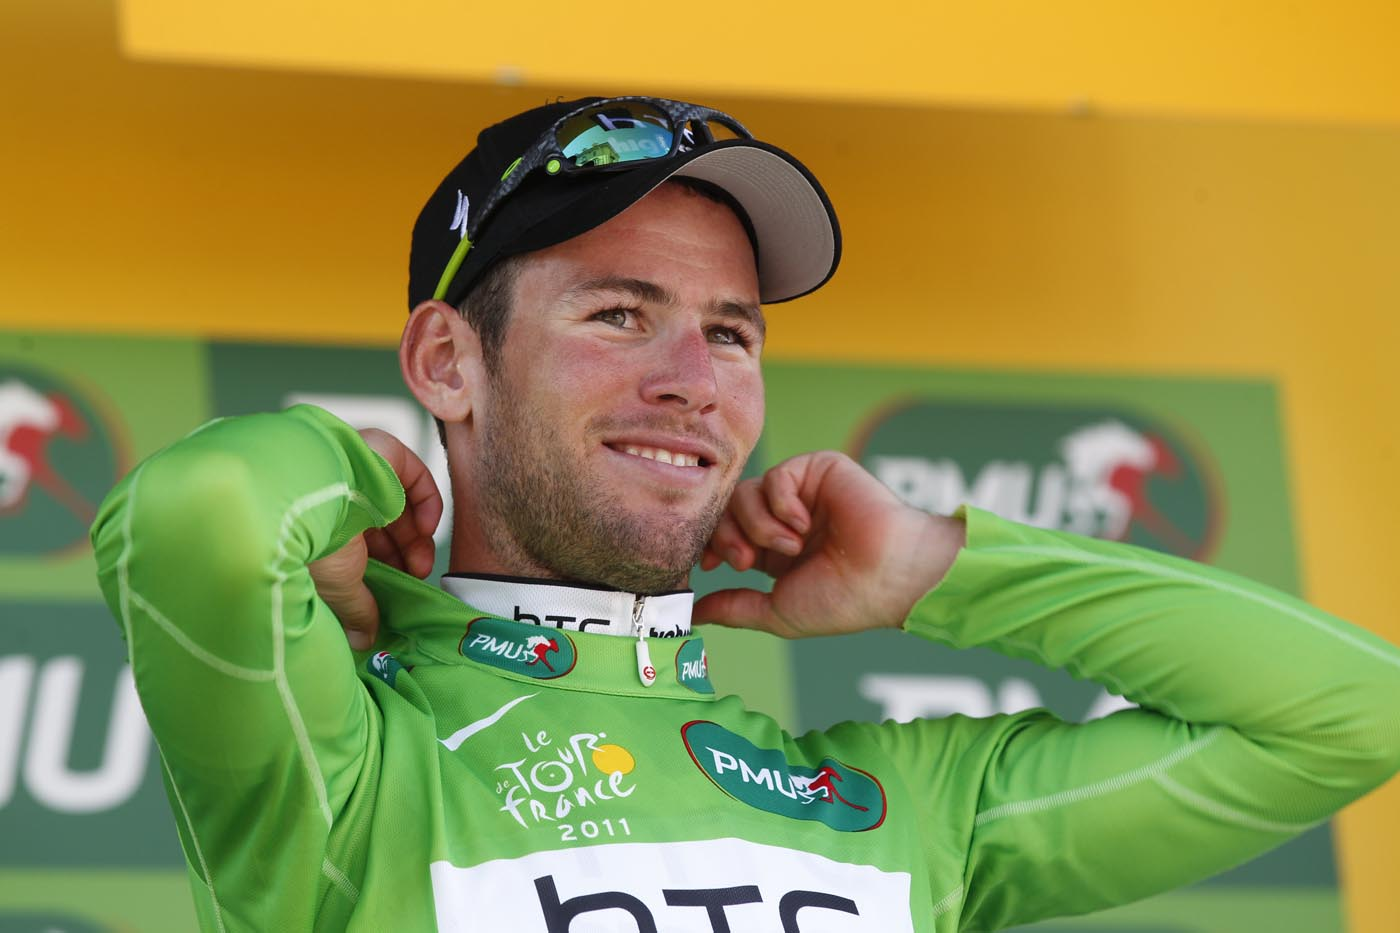 Mark Cavendish, Tour de France 2011, stage 17